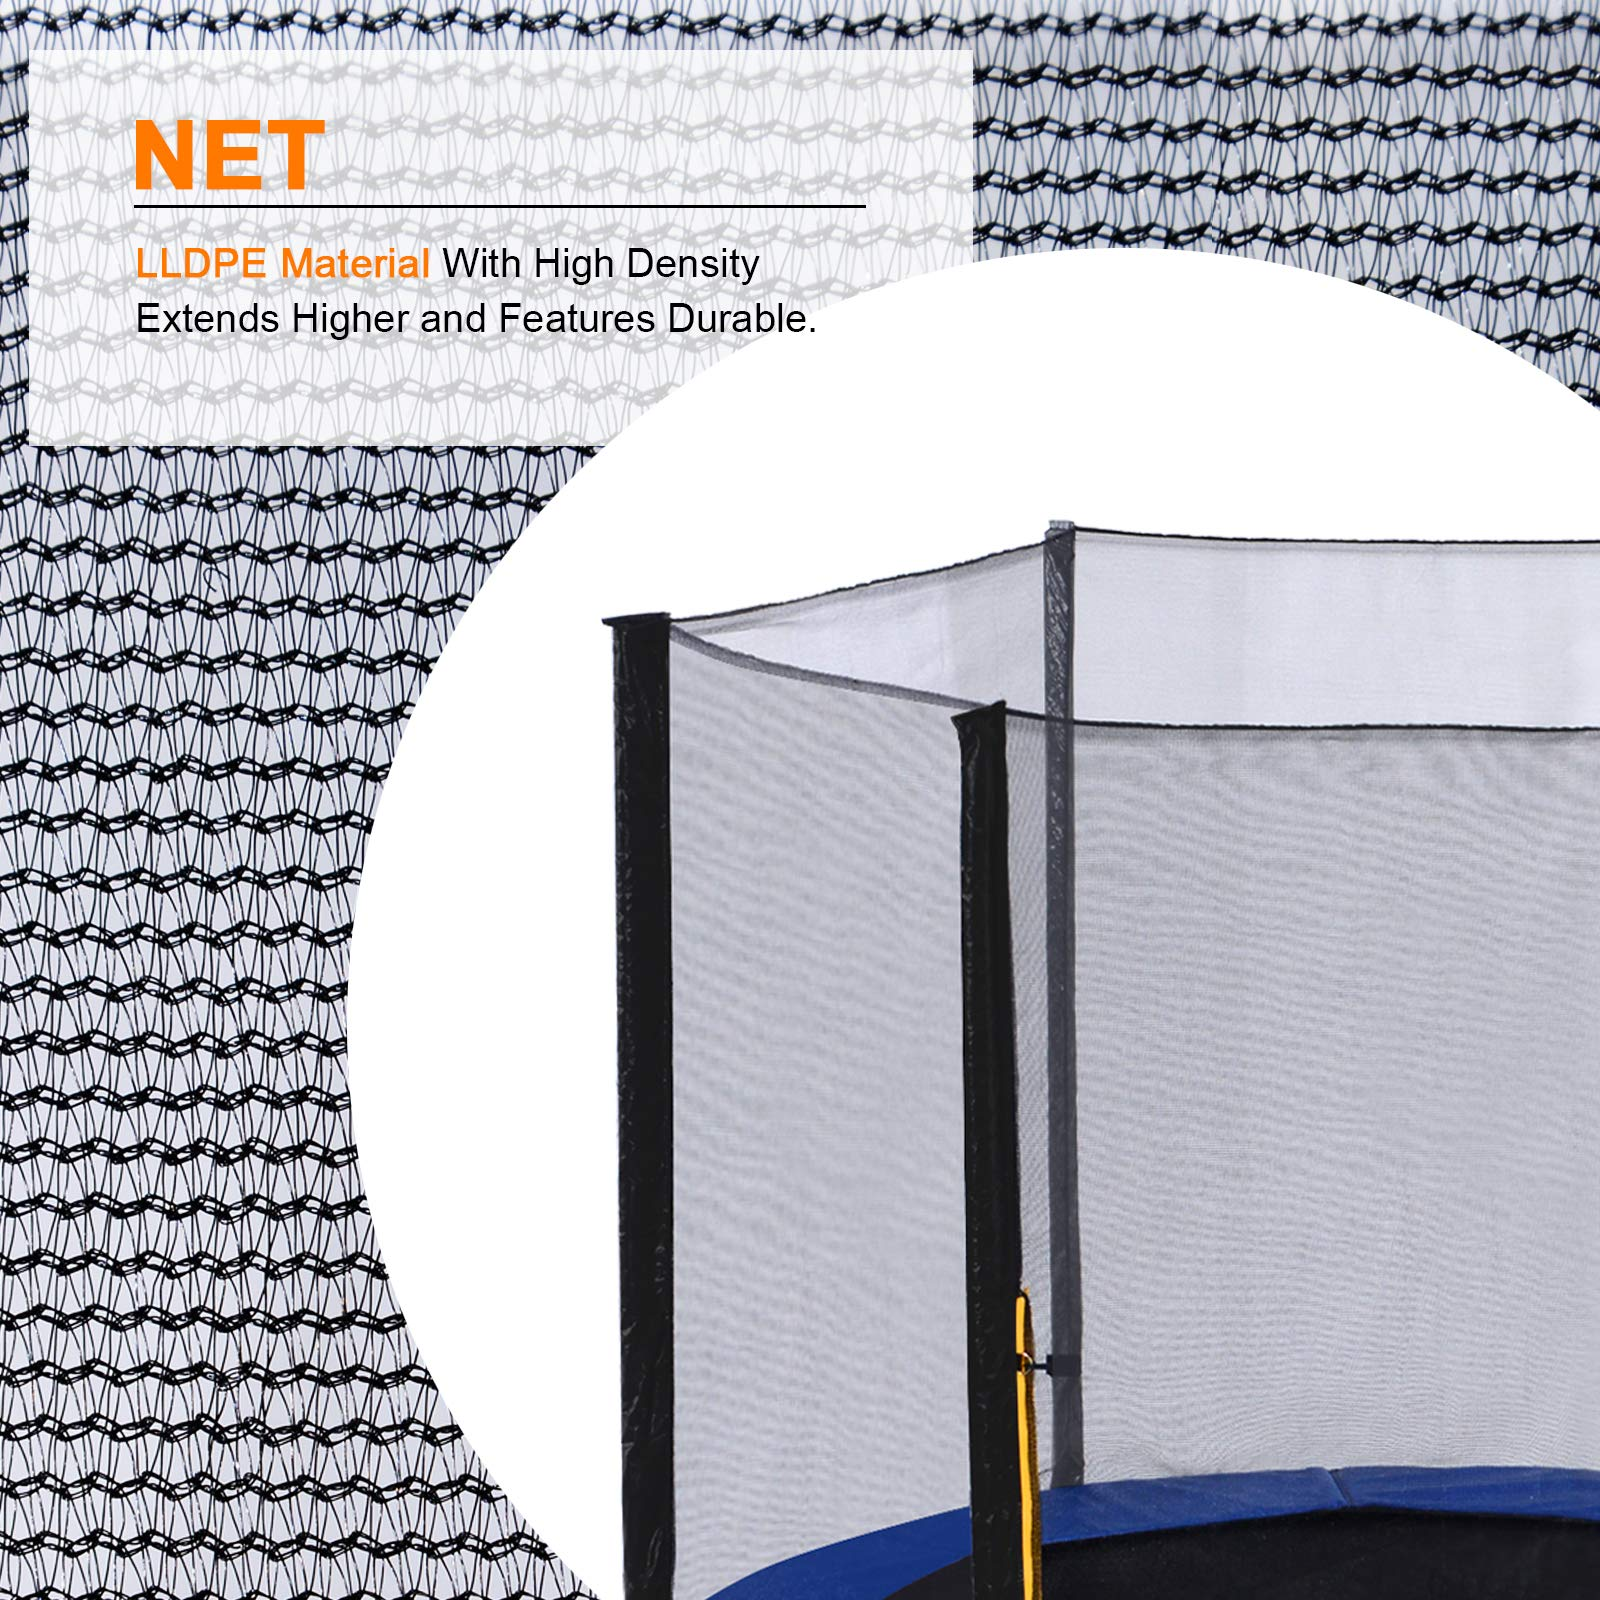 ExacMe Replacement Netting Outer Safety Net Without Poles for T-Series 10ft-16ft Trampoline-Net Only 6180 EN10T-EN16T (Fit Exacme T-Series 16ft) by Exacme (Image #2)